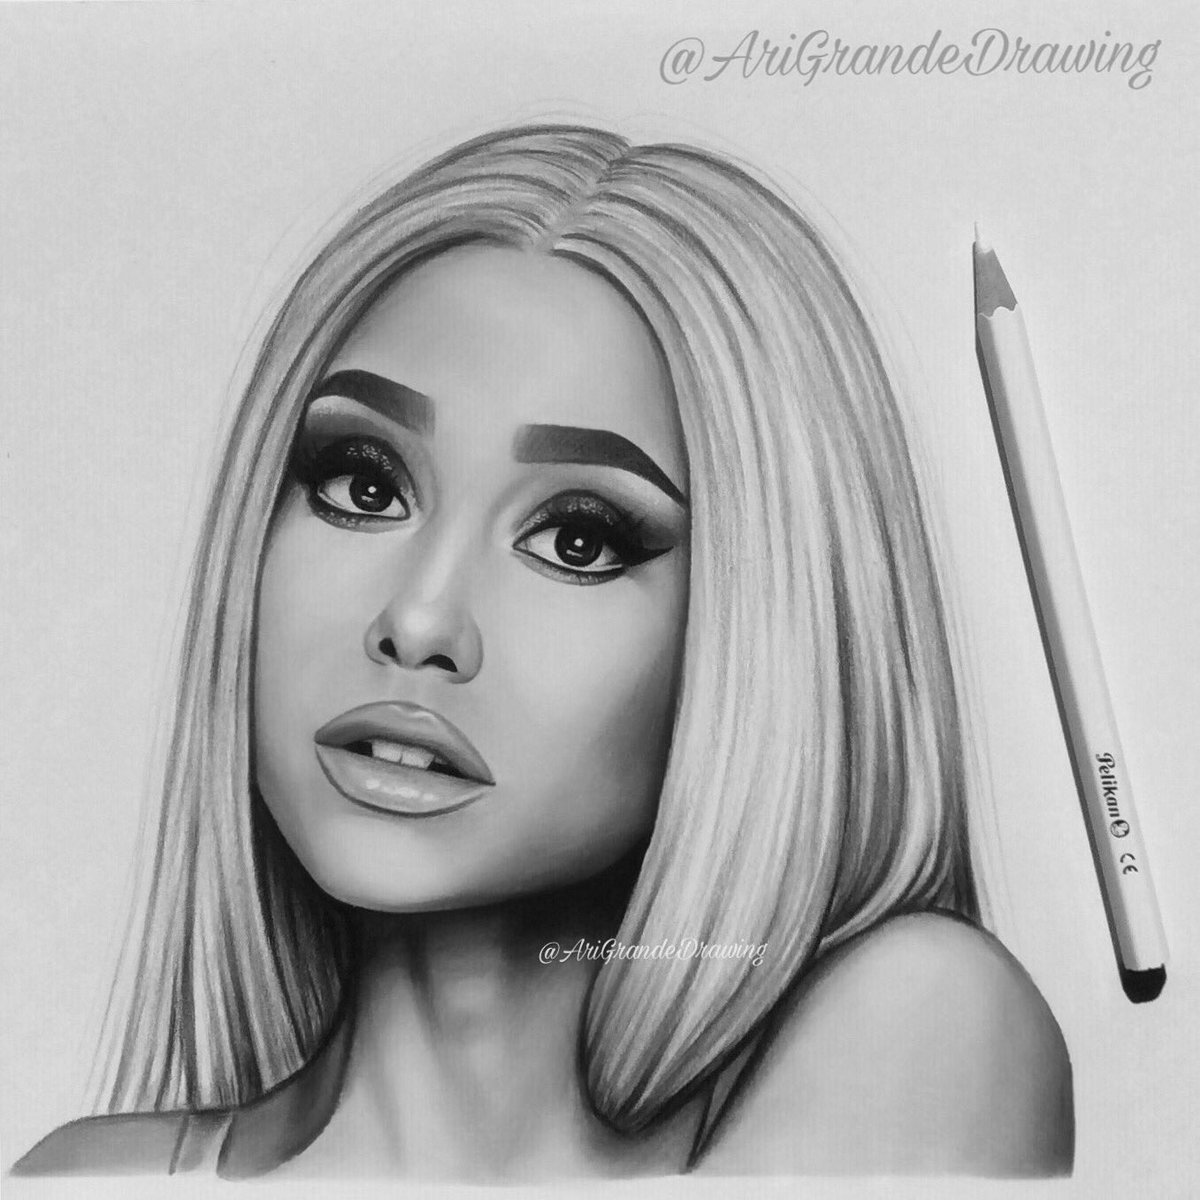 Spirosart on twitter ariana grande with platinum hair is the perfect concept im so proud of this drawing by the way ✨🙈